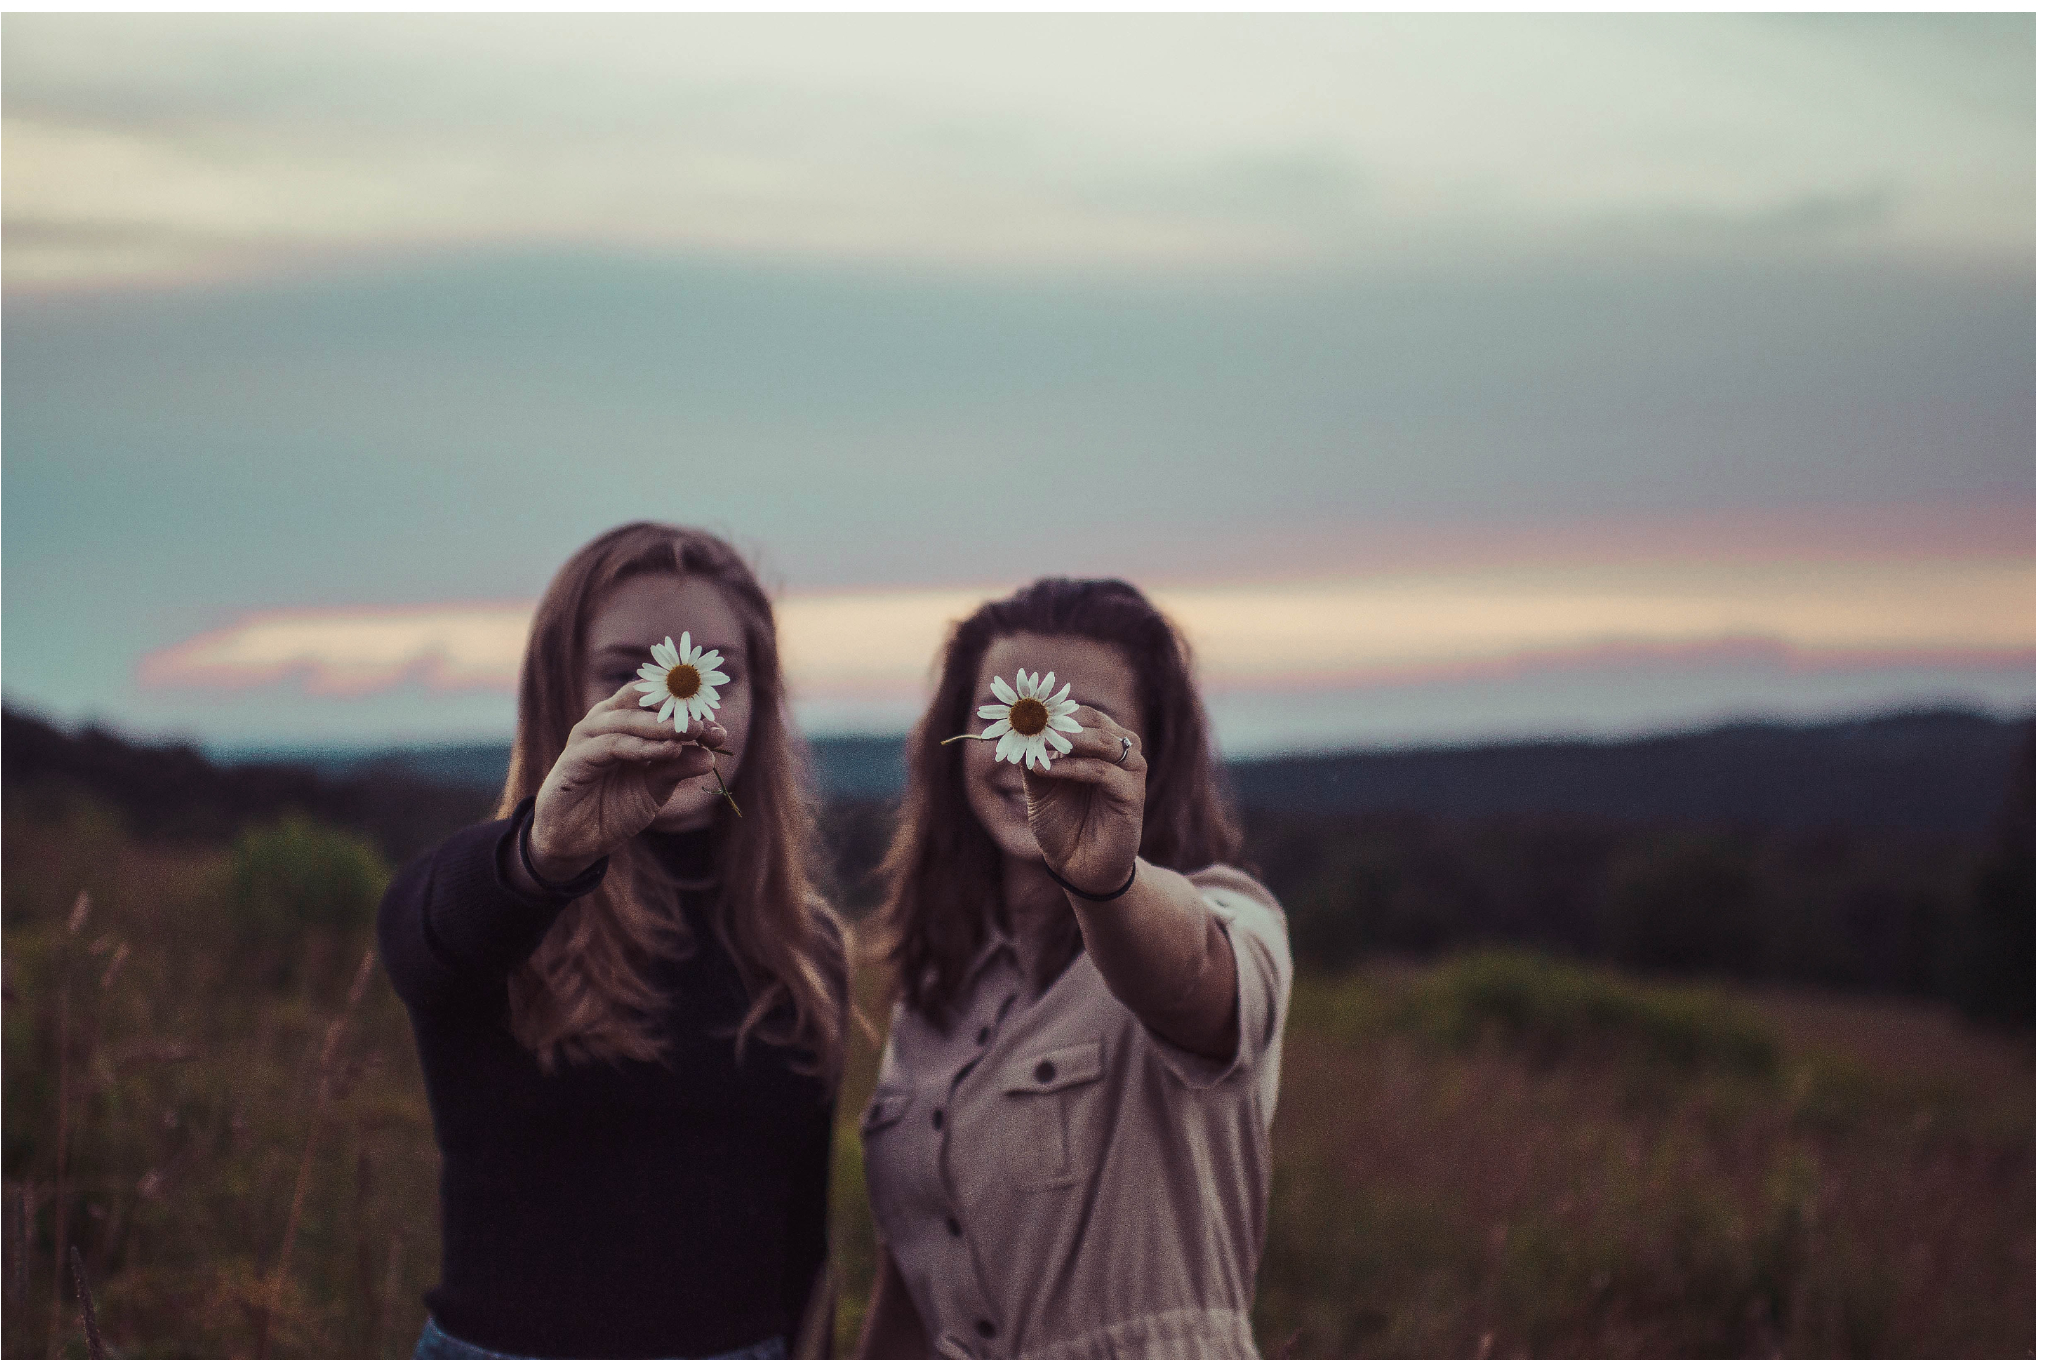 stock photo of friends holding flowers at dusk